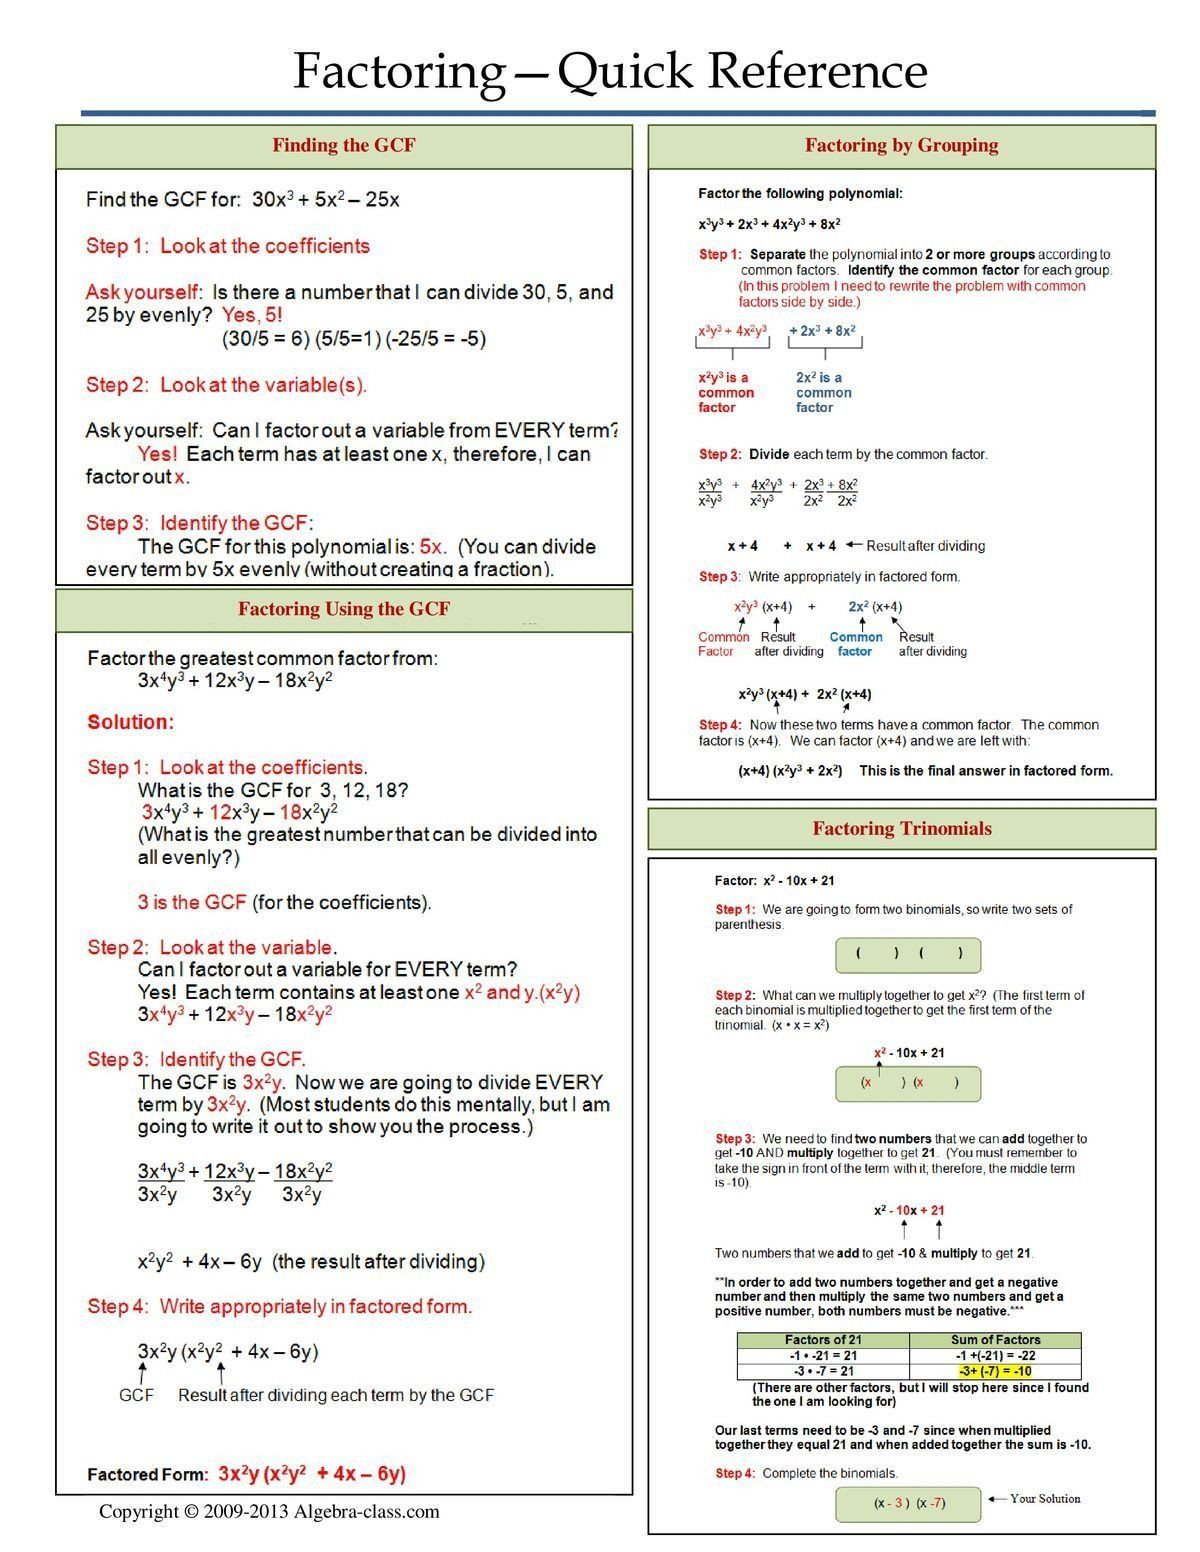 Arithmetic Sequence Worksheet Algebra 1 Algebra 1 Factoring Quick Reference Sheet With Images In 2020 Studying Math Education Math Teaching Algebra